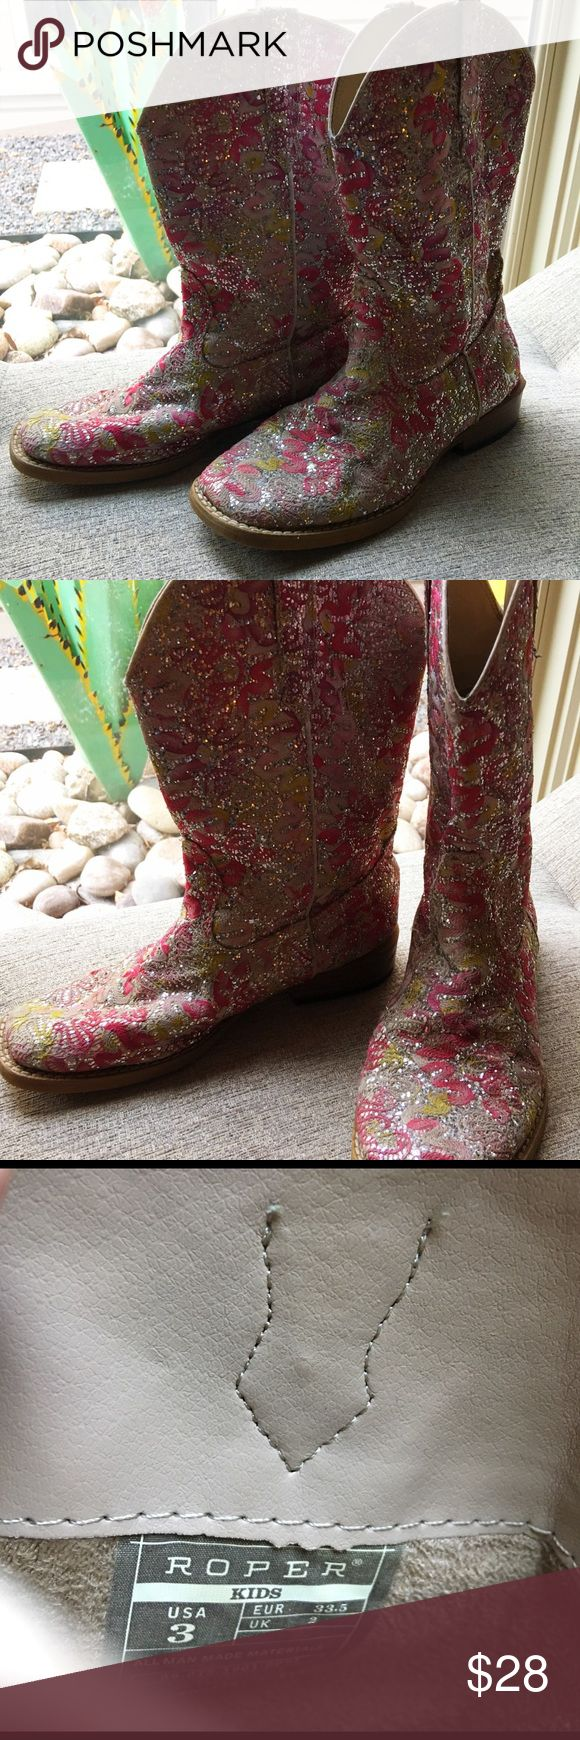 ROPER Girl's Sparkly Boots Adorable pink sparkly roper boots. Very Good condition and excellent inside as well. Bottom of one sole has little girl's handwriting on it, lol!  Remember those days ?   Love 💕 these little Ropers!  Sz 3 Roper Shoes Boots